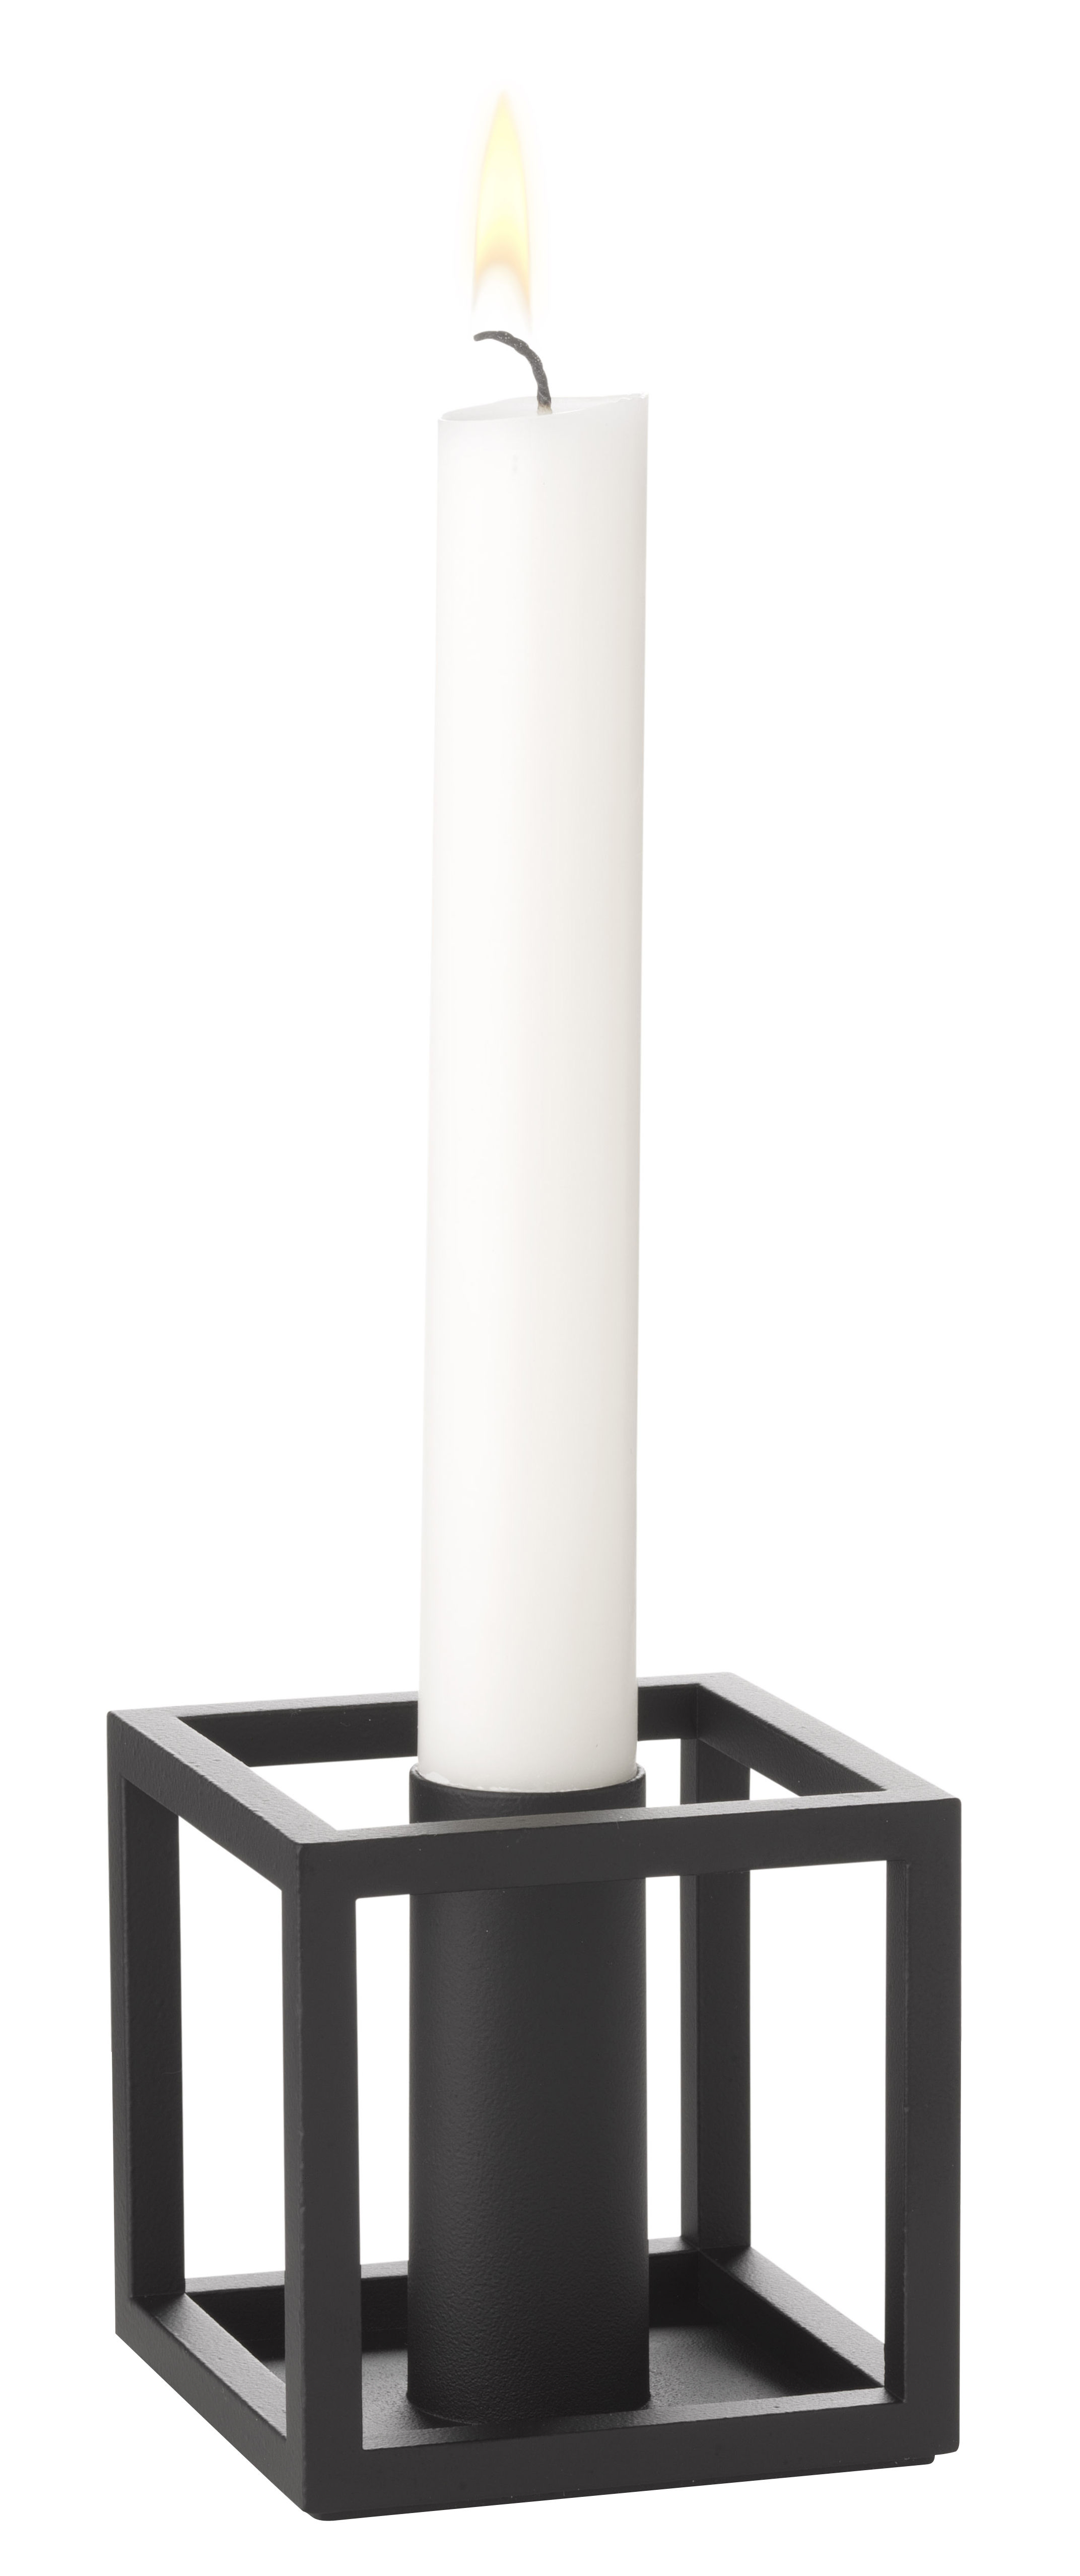 Decoration - Candles & Candle Holders - Kubus 1 Candle stick - Reissue 1962 by by Lassen - Black - Lacquered steel